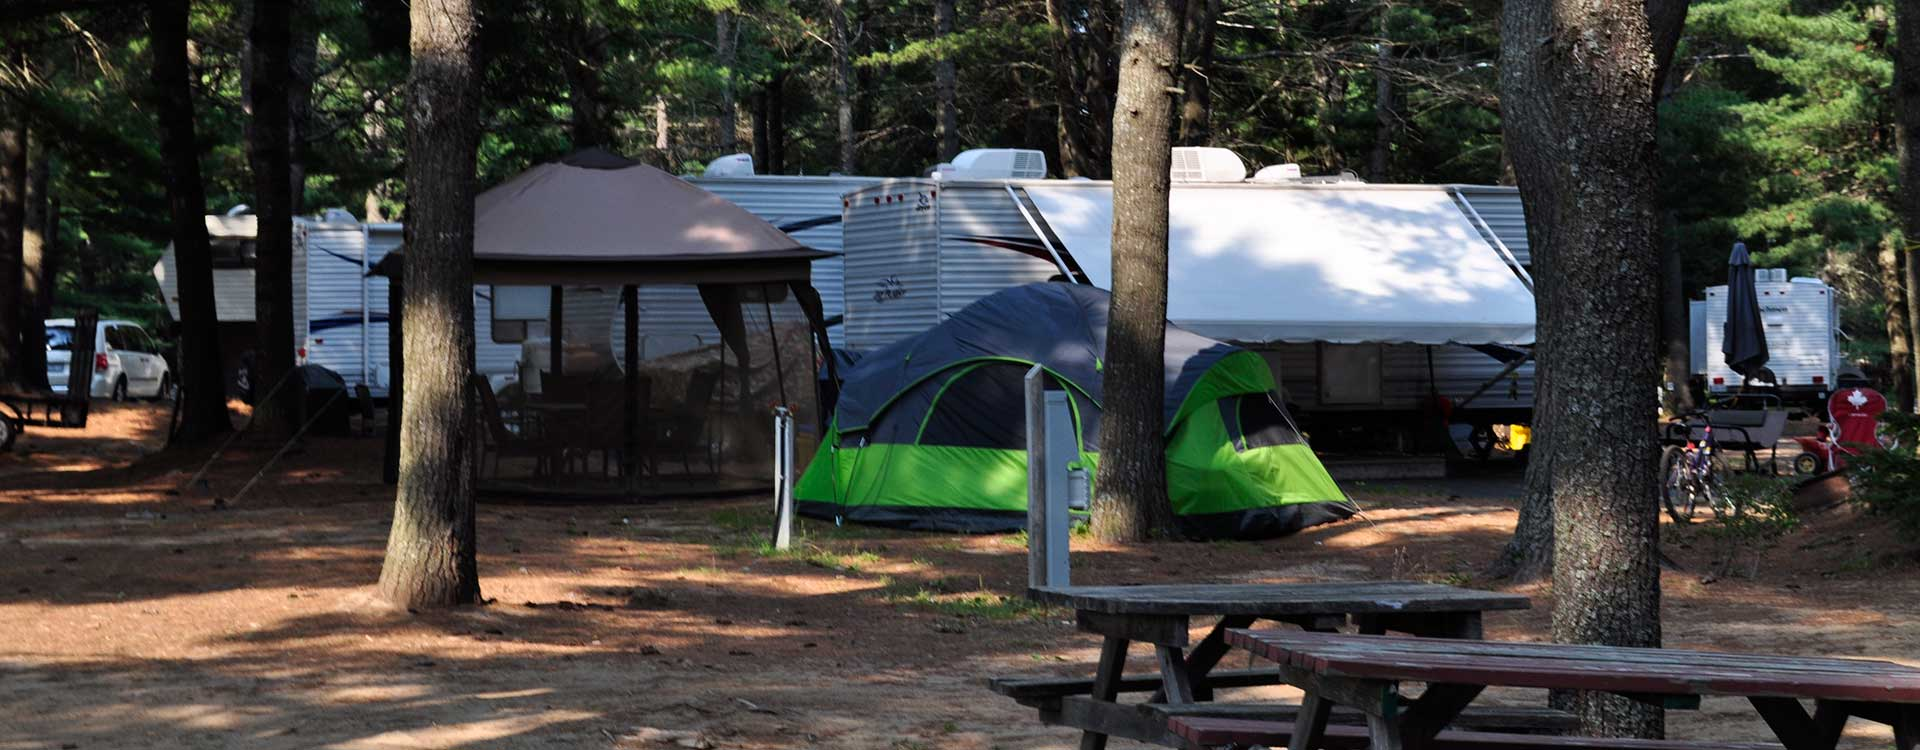 blueberry-hill-campground-motel-intro2